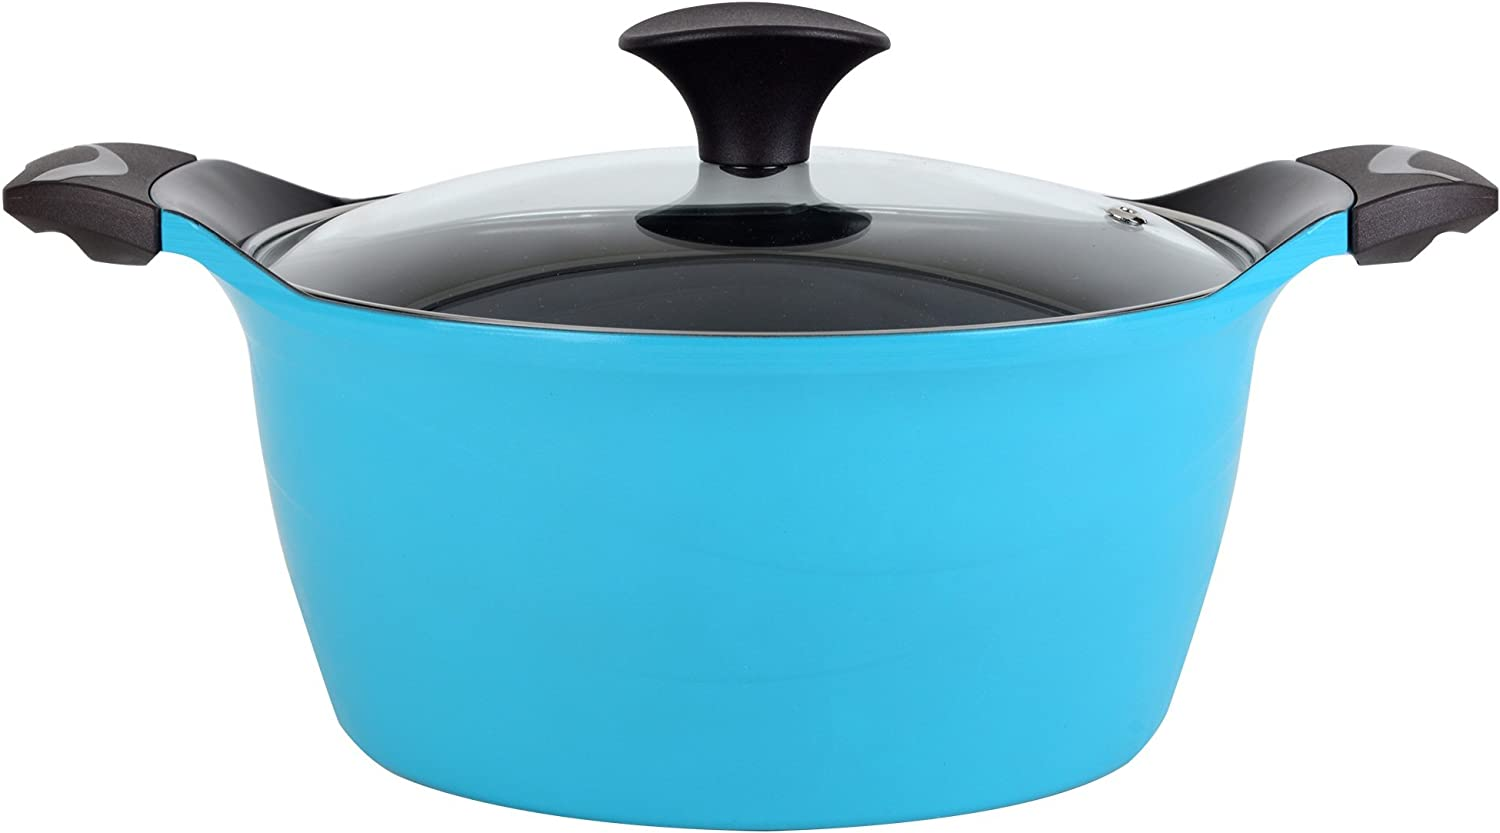 Cook N Home 4.2 Quart Nonstick Ceramic Coating Die Cast High Casserole Pan with Lid, Blue